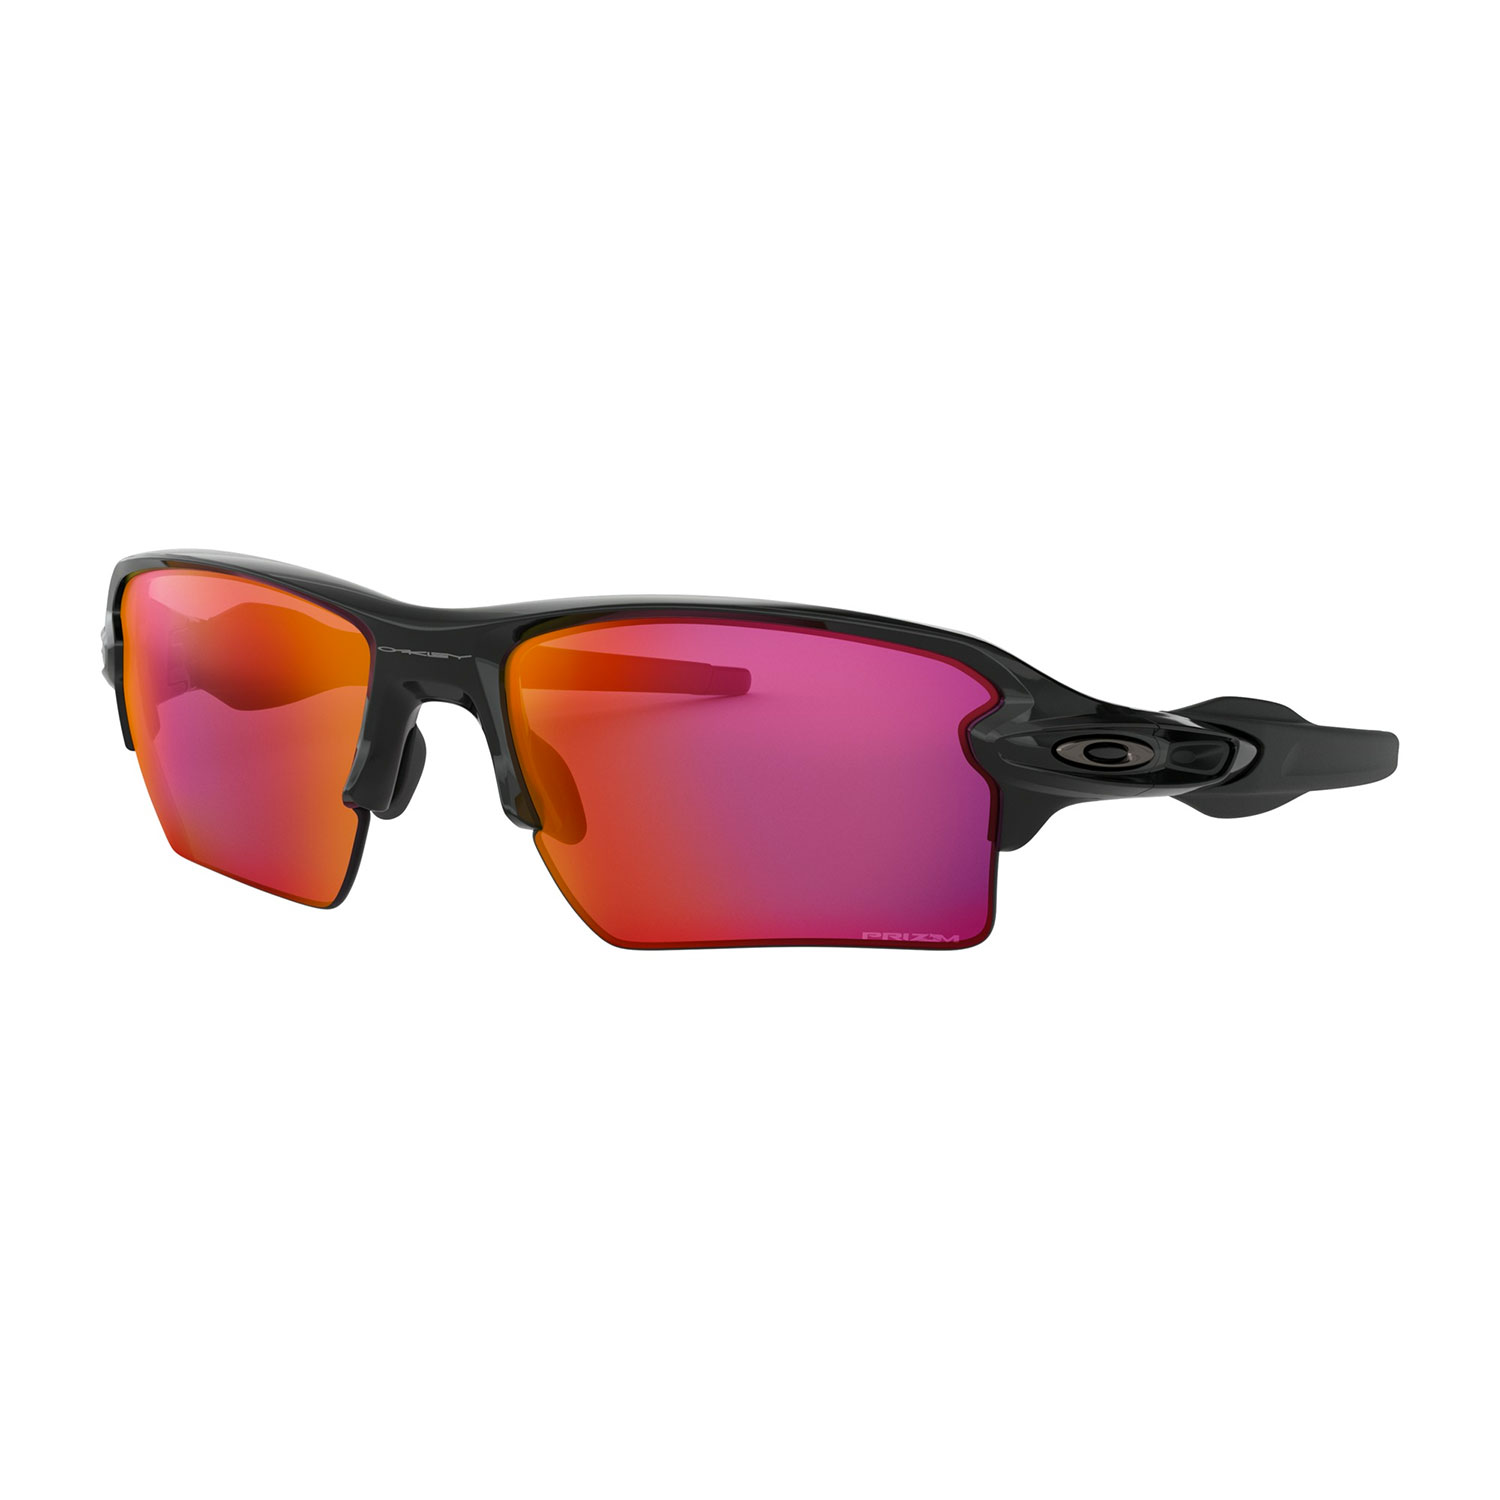 Oakley Flak 2.0 XL Glasses - Polished Black/Prizm Field